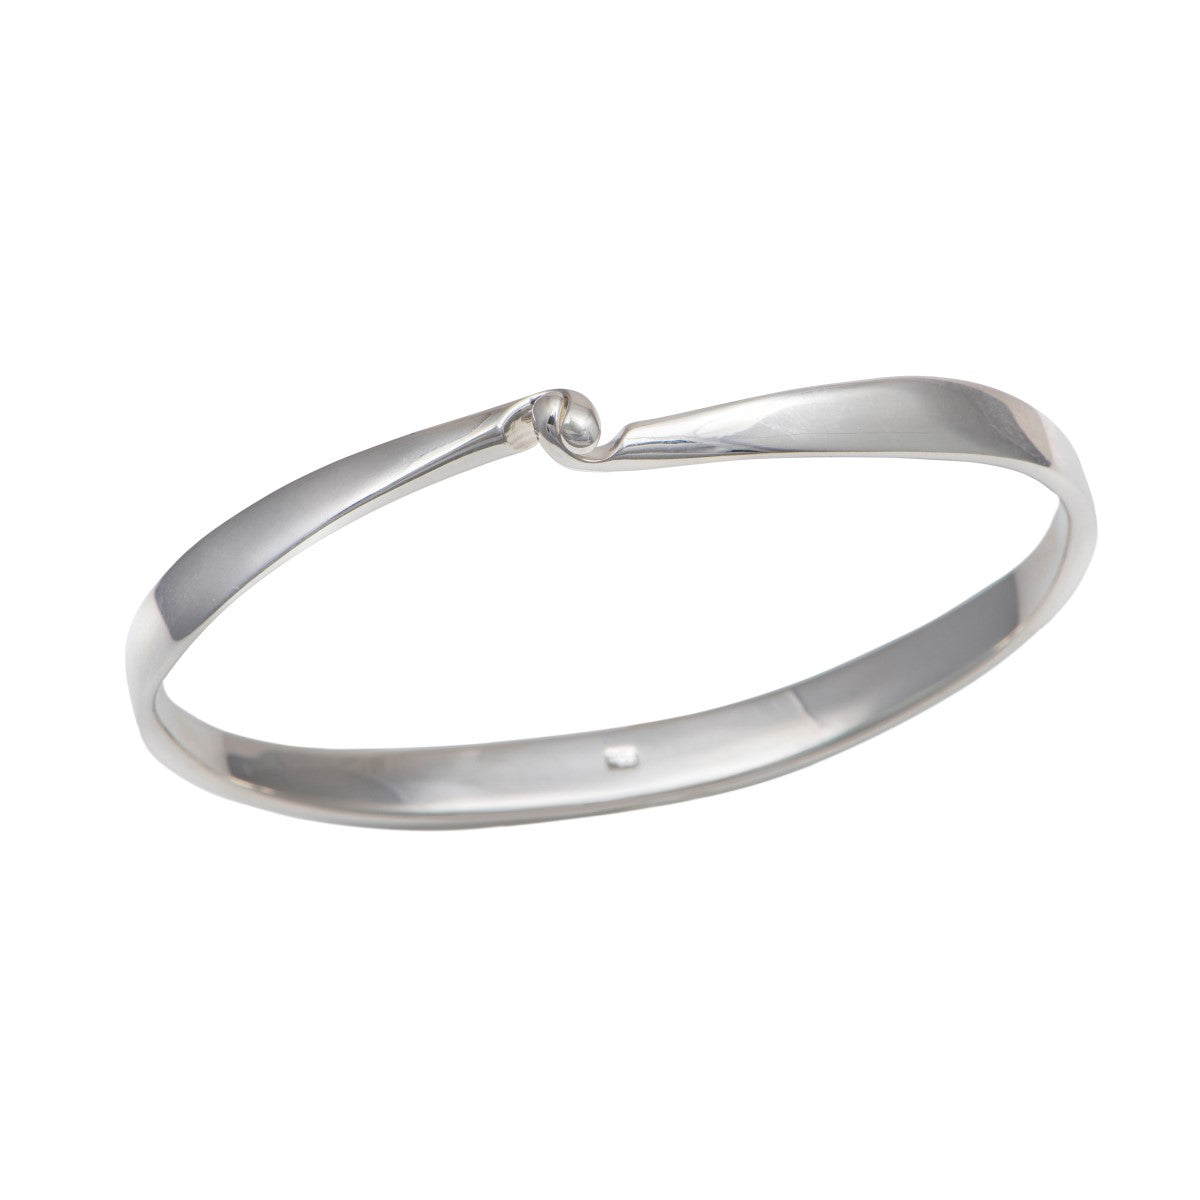 Sterling Silver Clasp Bangle with a Tapered Design